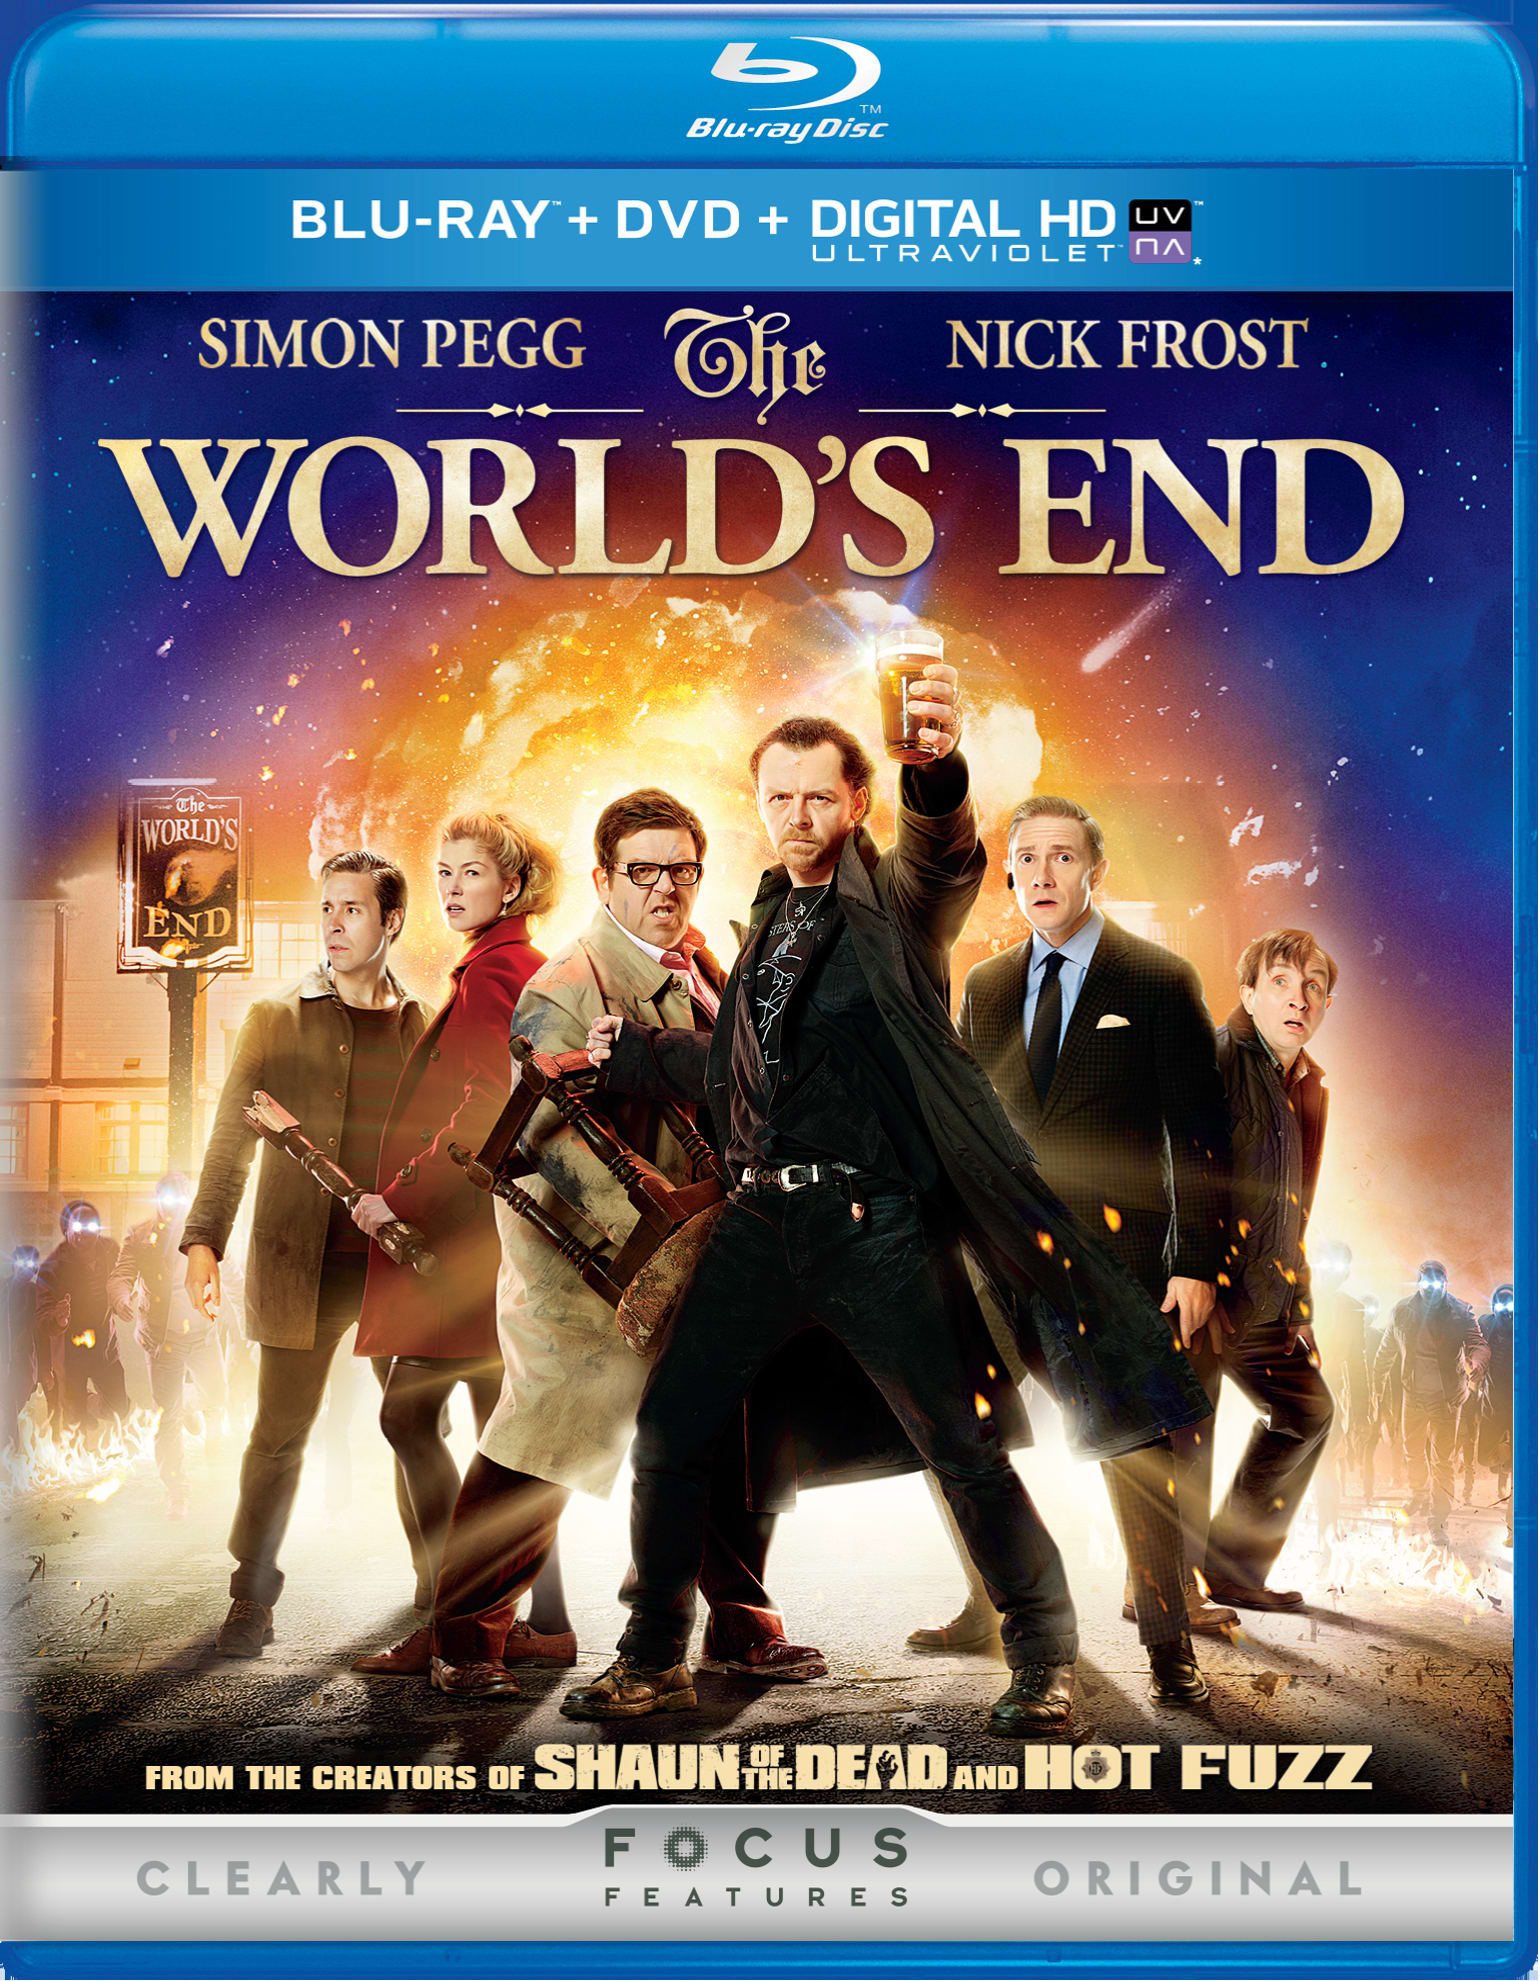 The World's End (DVD + Digital) [Blu-ray]